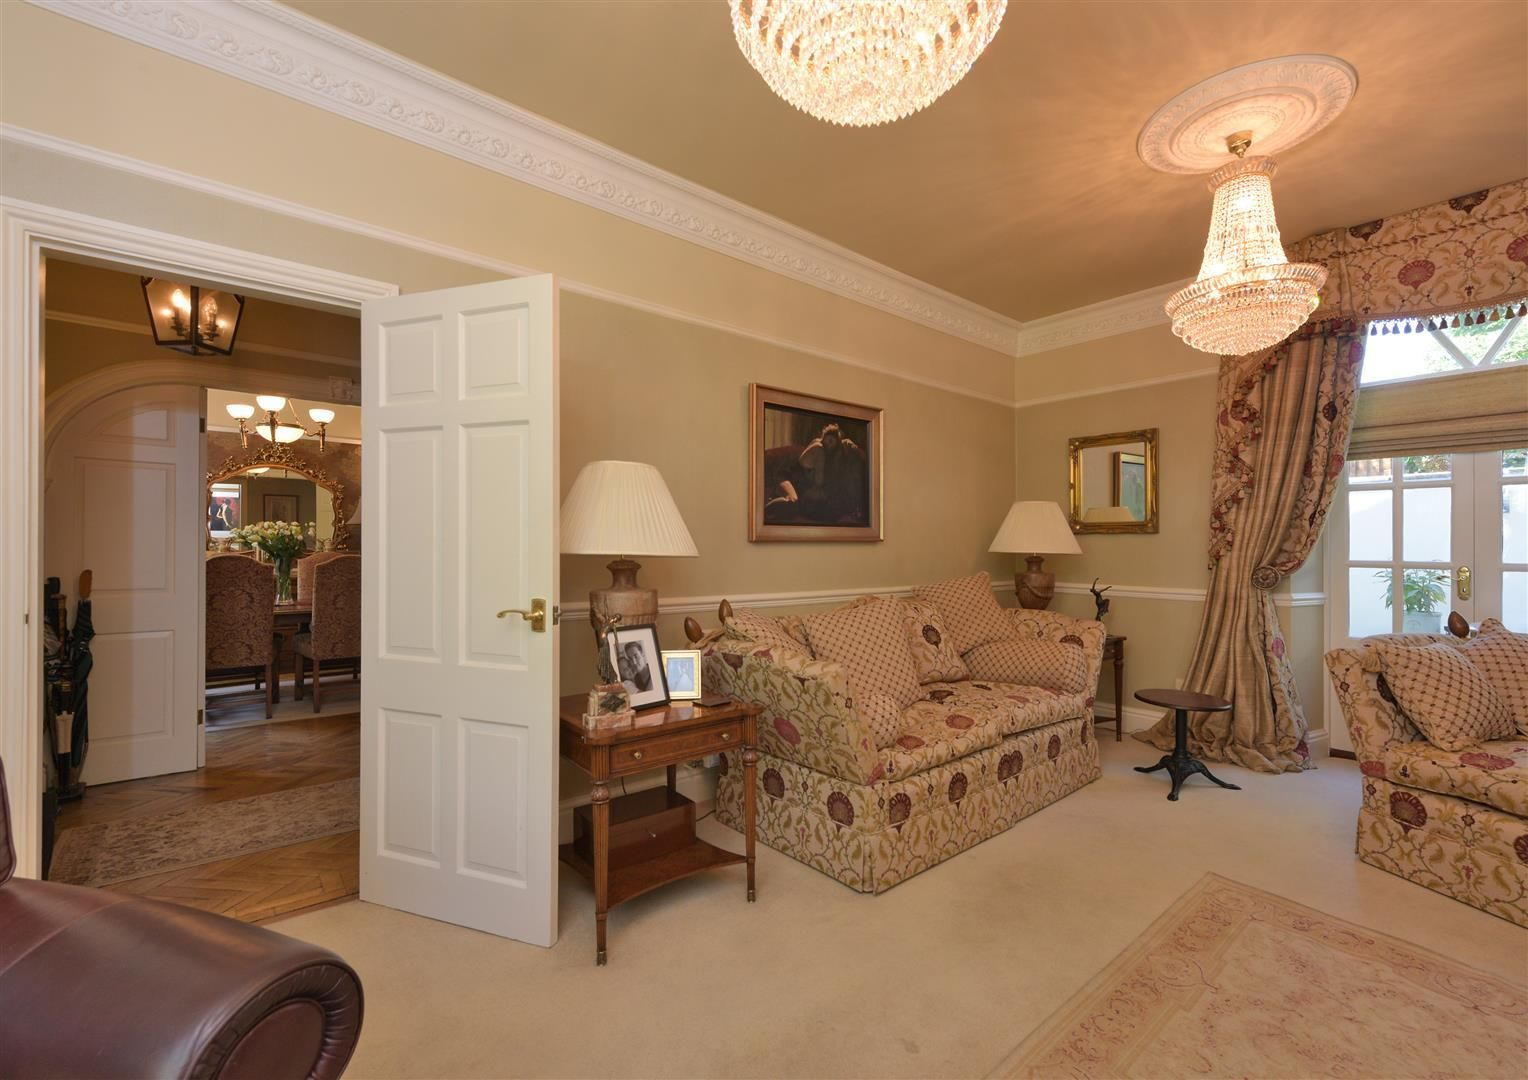 3 bed house for sale in Hagley  - Property Image 6